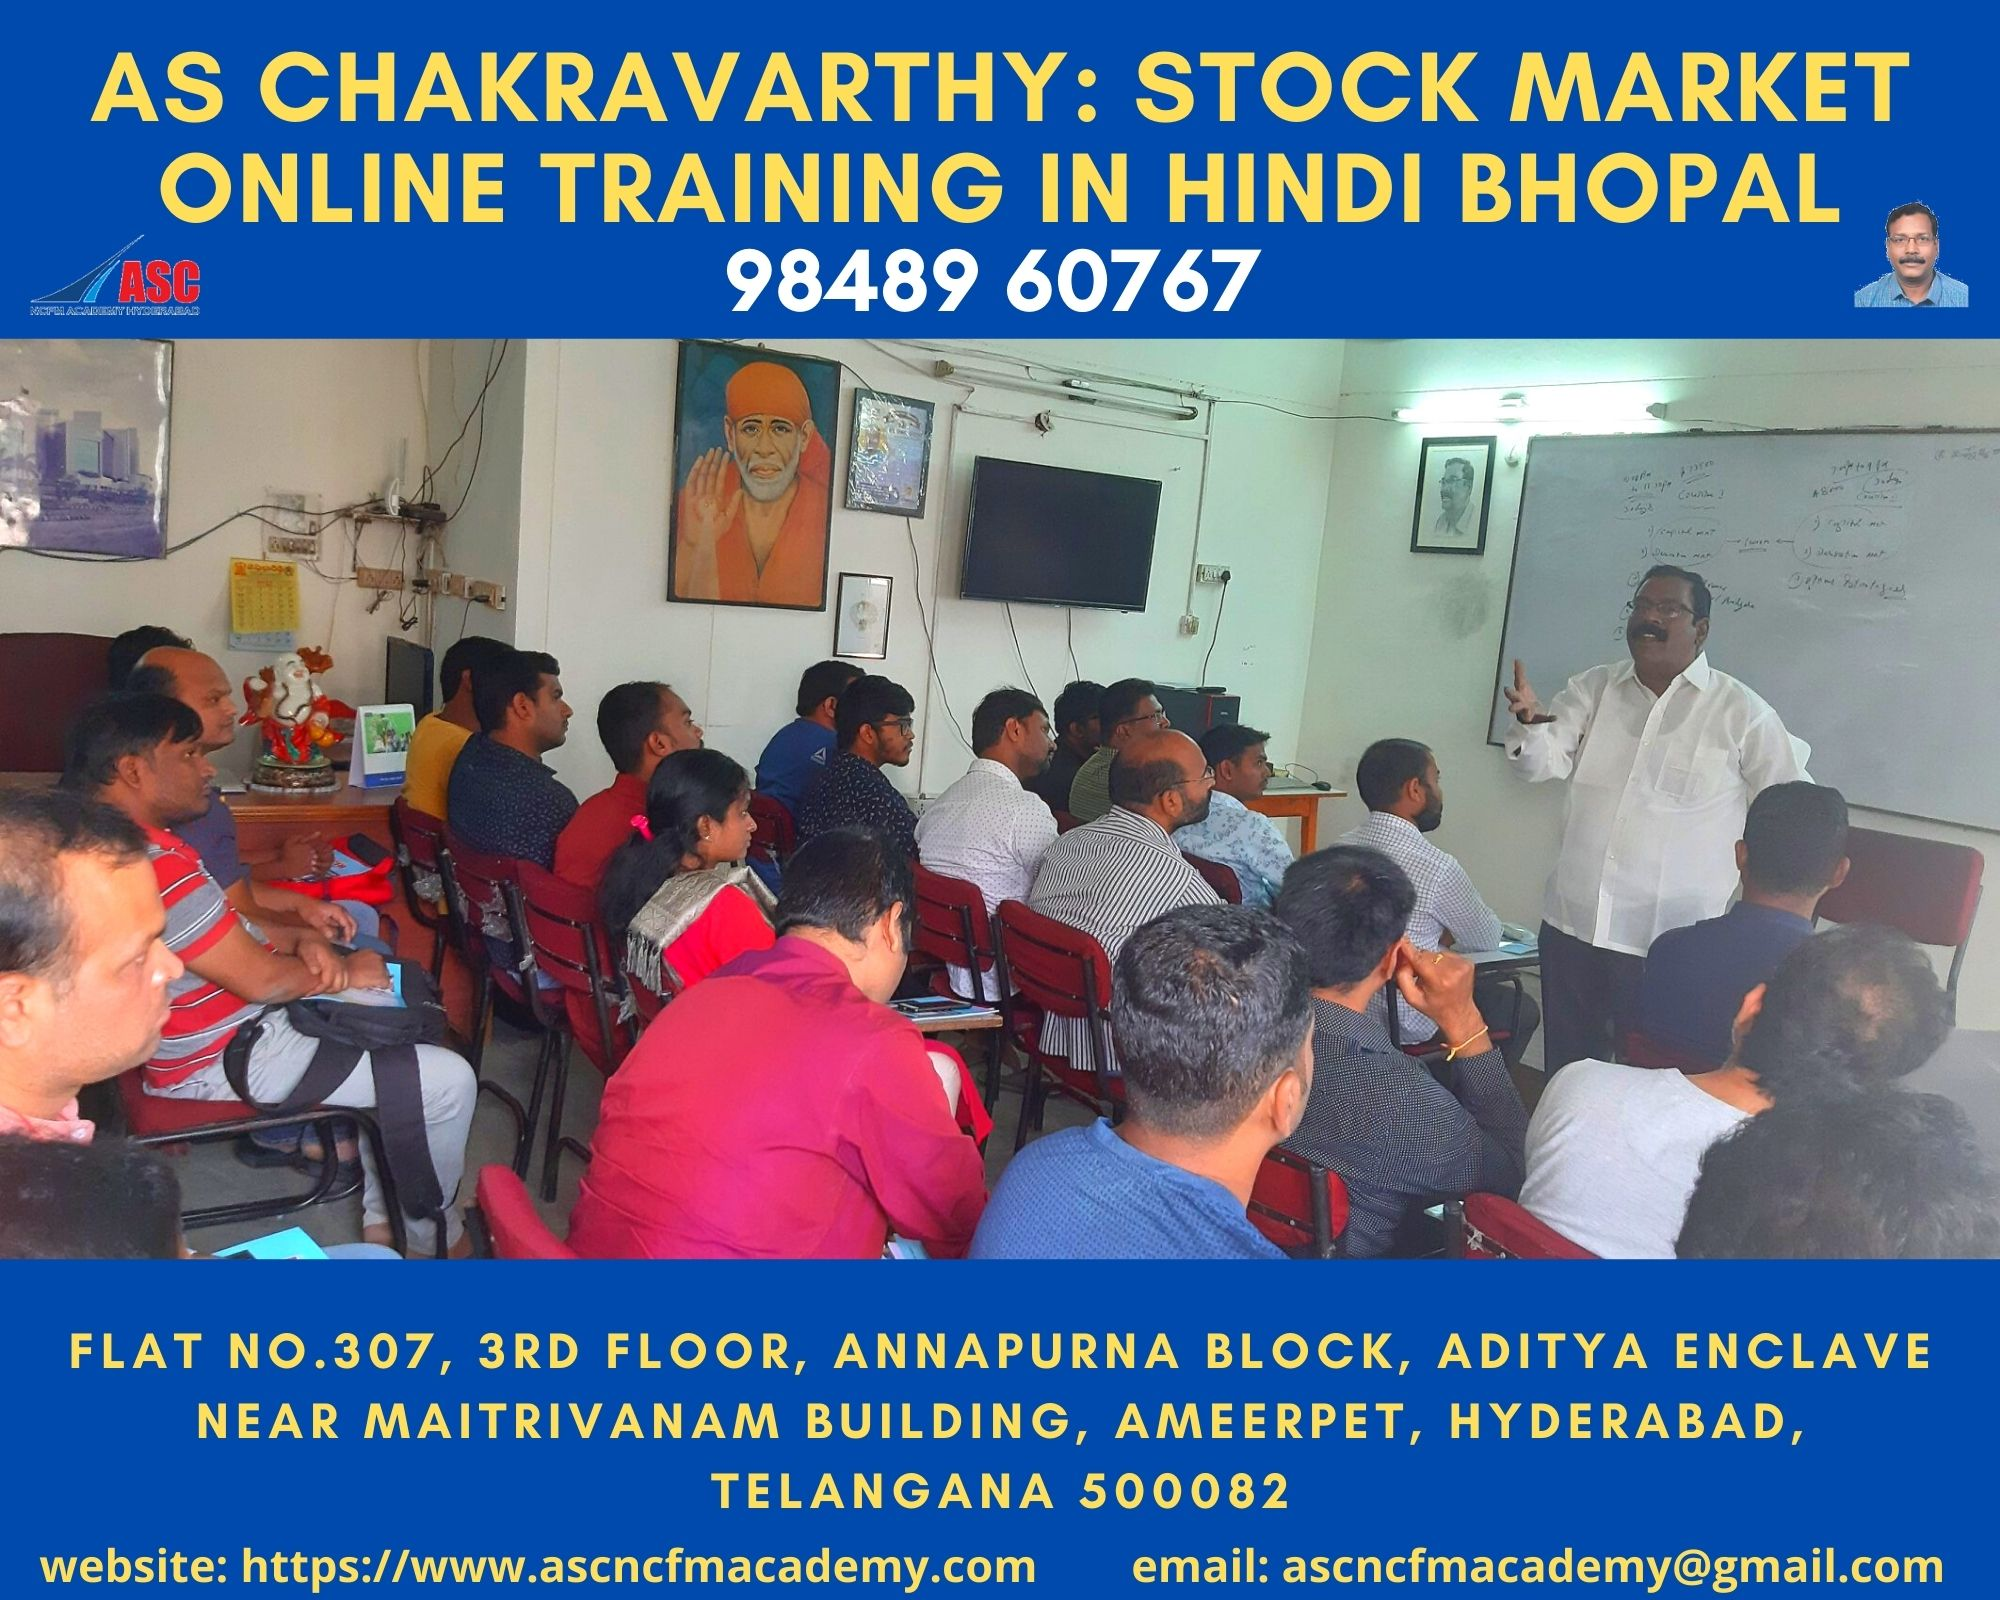 Online Stock Market Technical Training in Hindi Bhopal